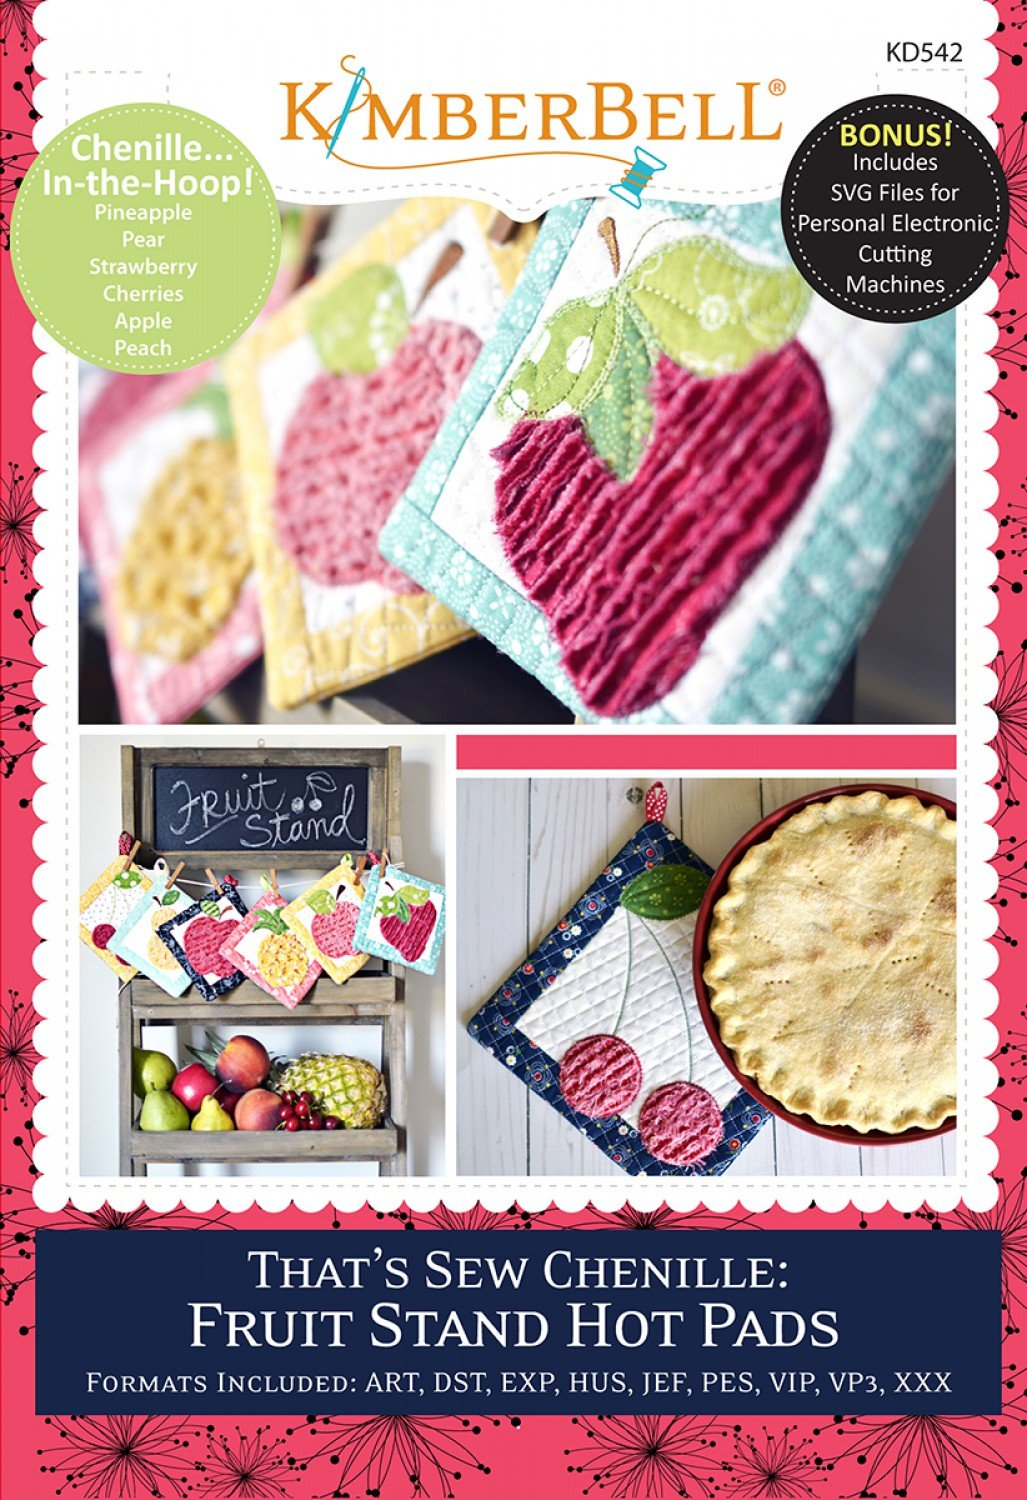 That's Sew Chenille: Fruit Stand Hot Pads - In The Hoop Machine Embroidery  Designs with CD by KimberBell KD542